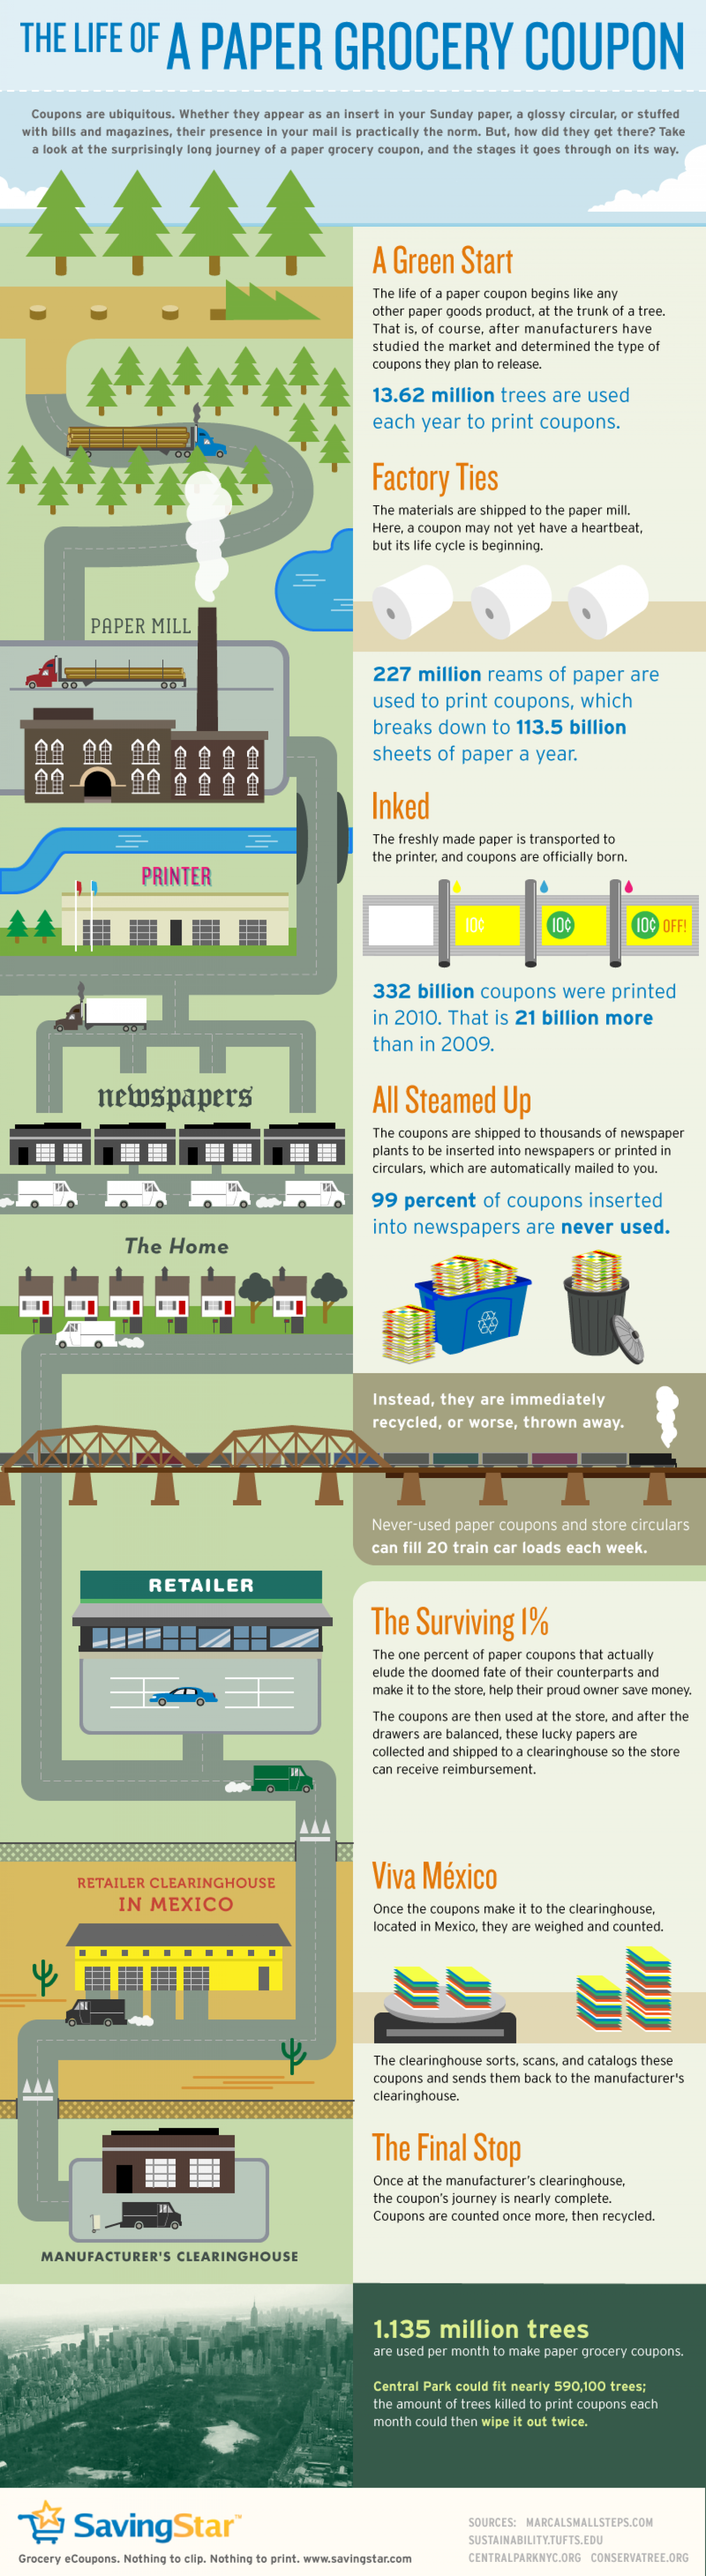 The Life Of A Paper Grocery Coupon Infographic